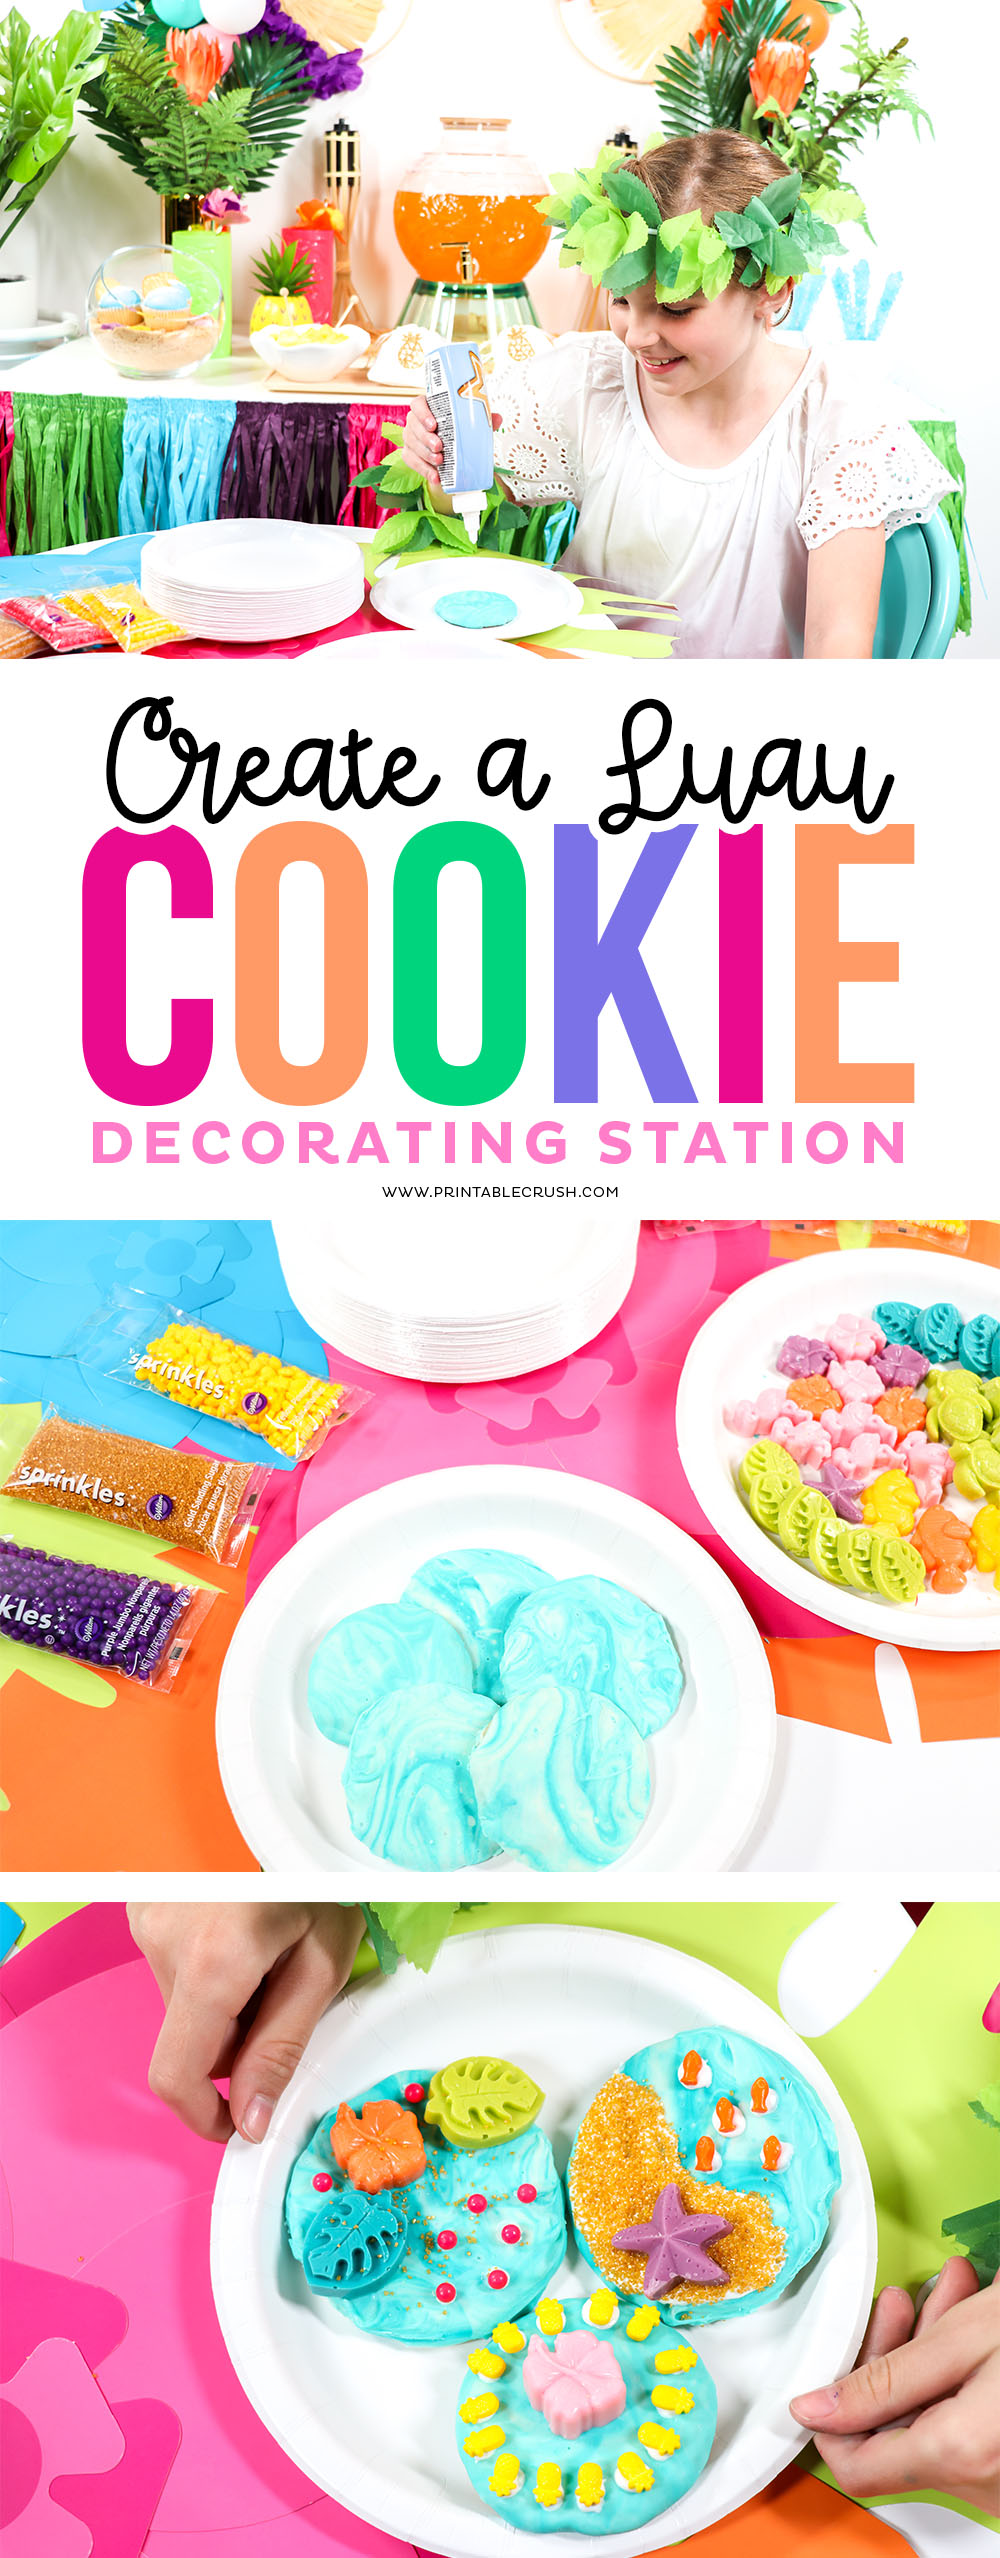 No cookie skills needed for this Luau Cookie Decorating Station! This is a super fun and easy activity for your summer luau party. #luauparty #kidpartyideas #luaupartyideas #hawaiianluau #cookiedecocorating #kidactivities #easypartyideas via @printablecrush